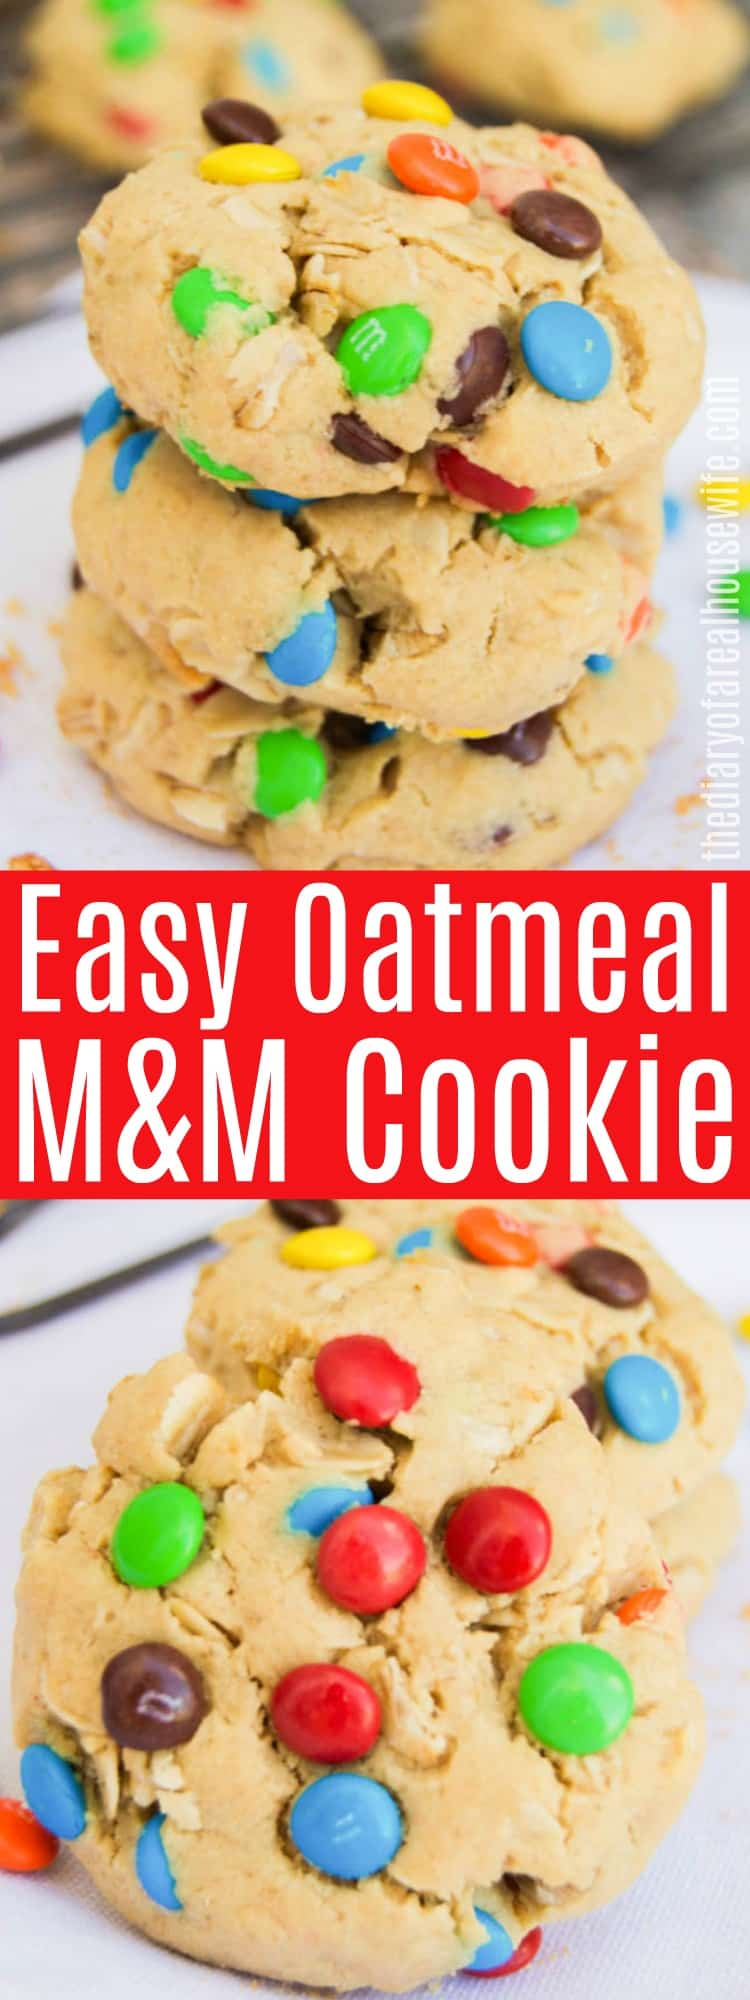 Oatmeal M&M Cookie